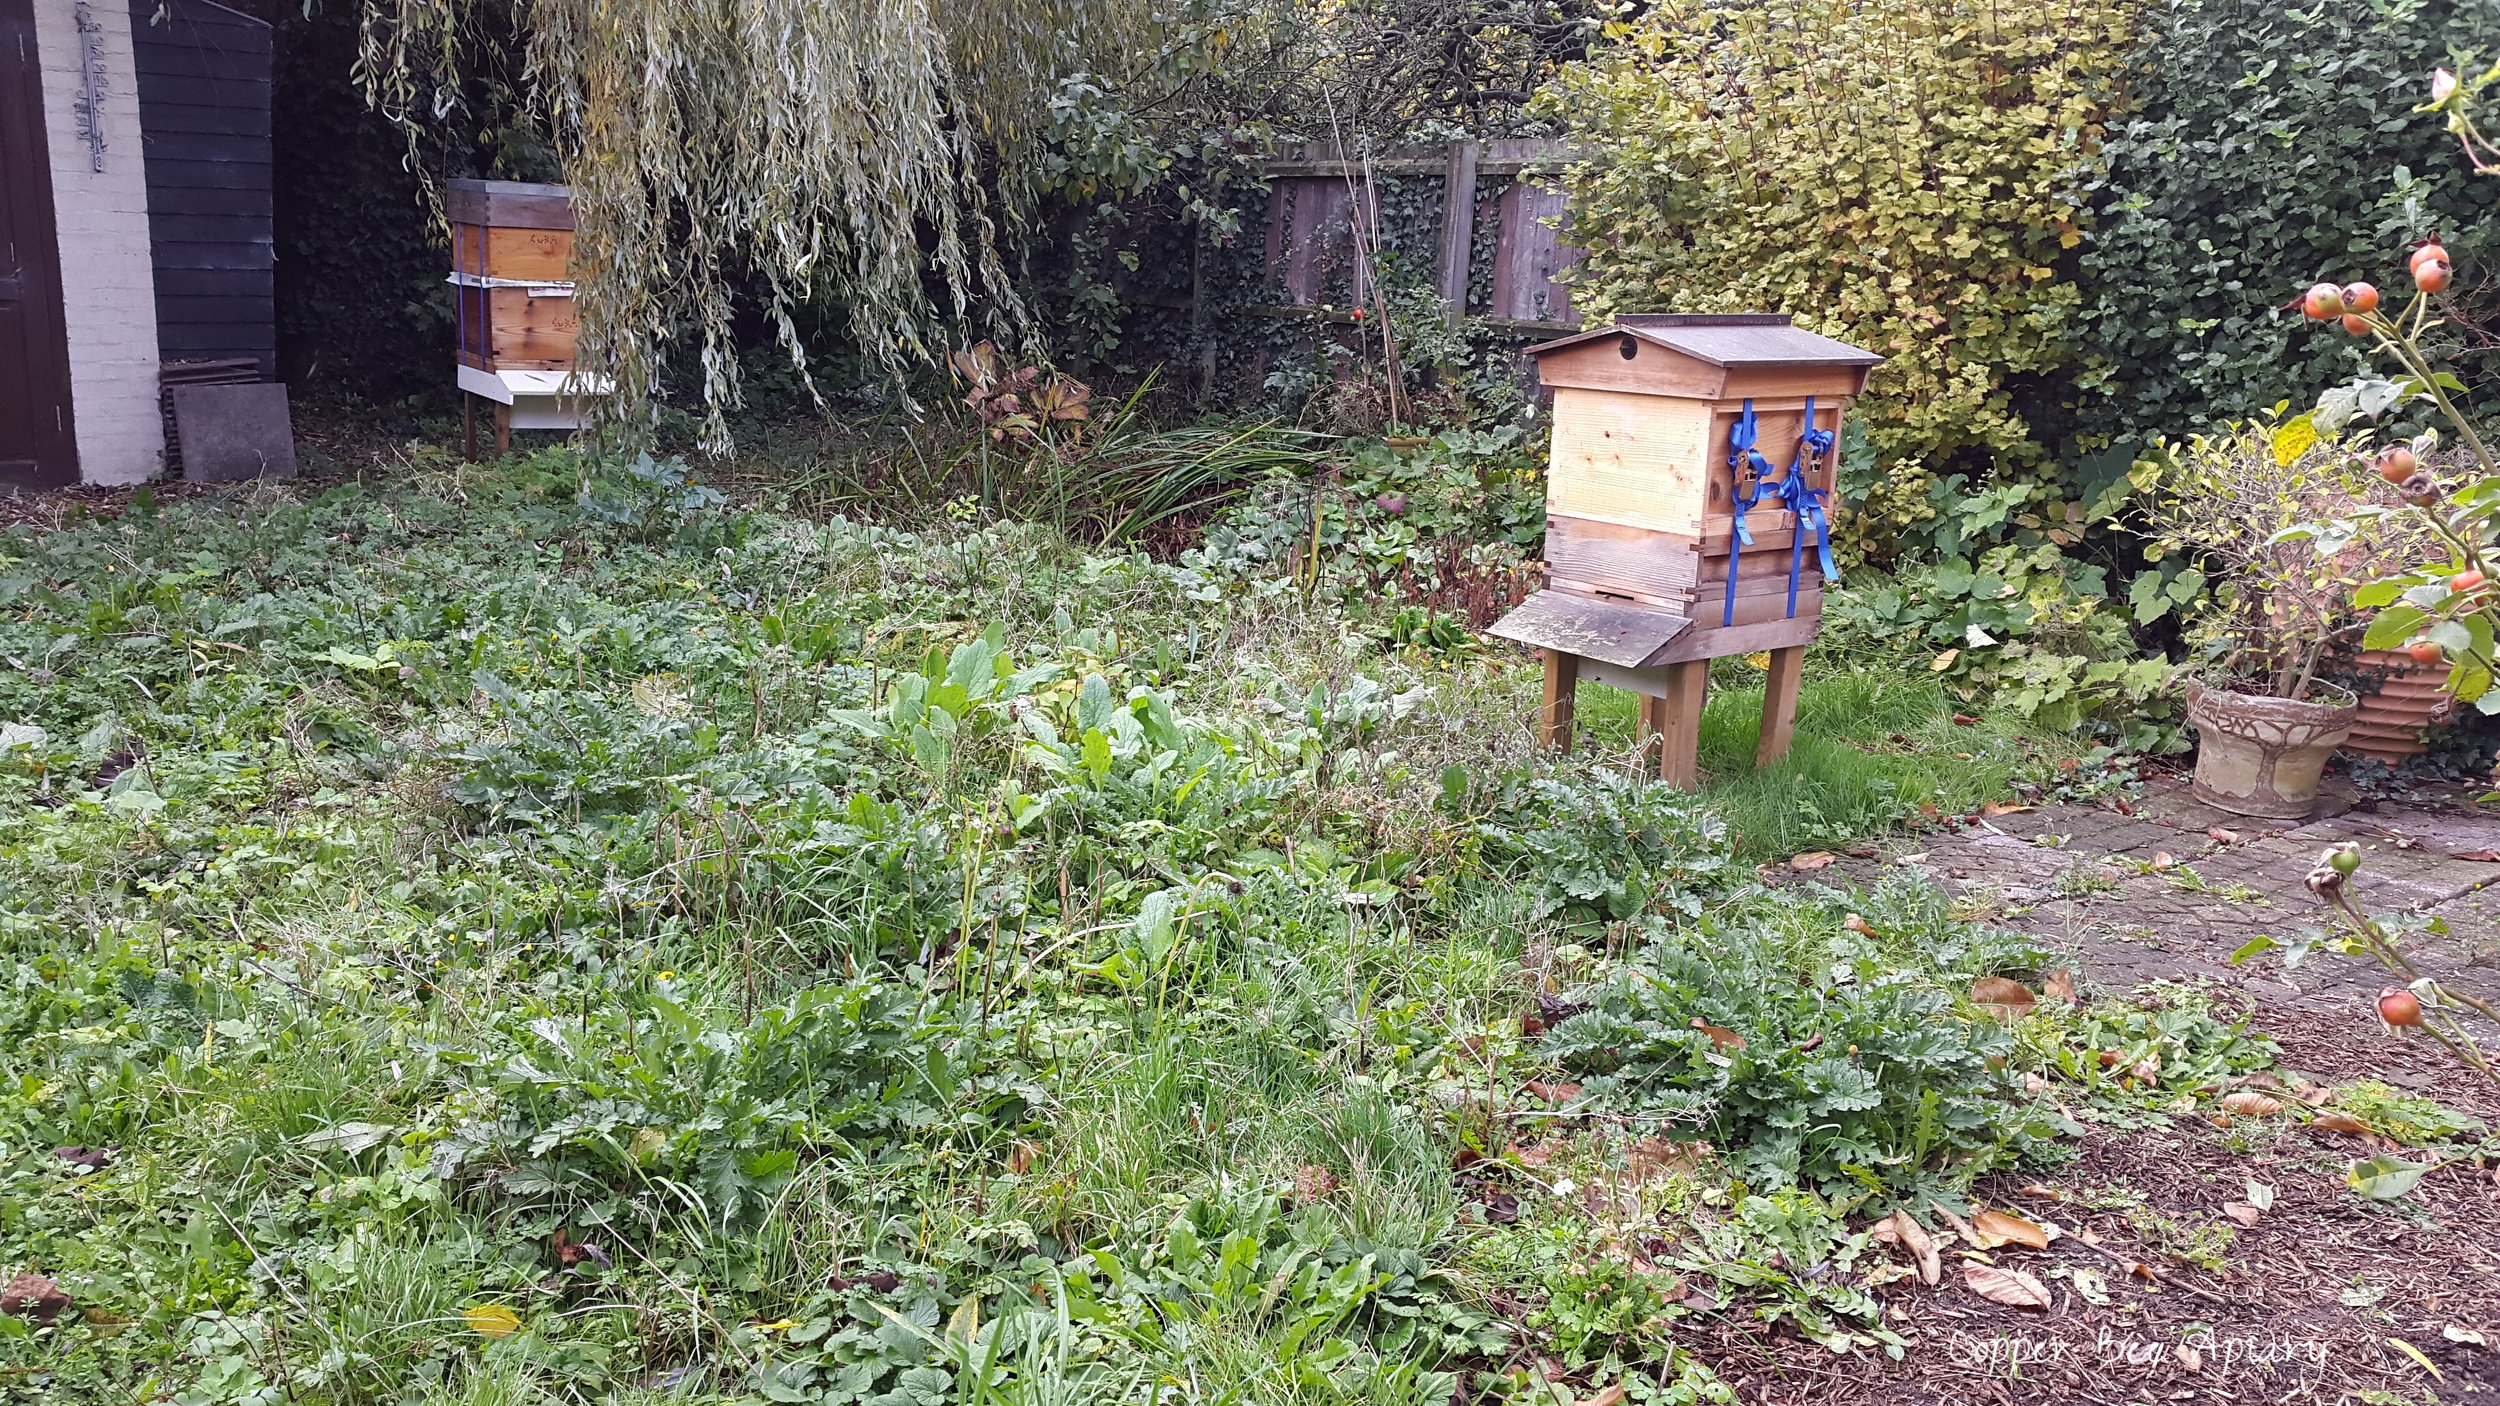 Last look at the apiary